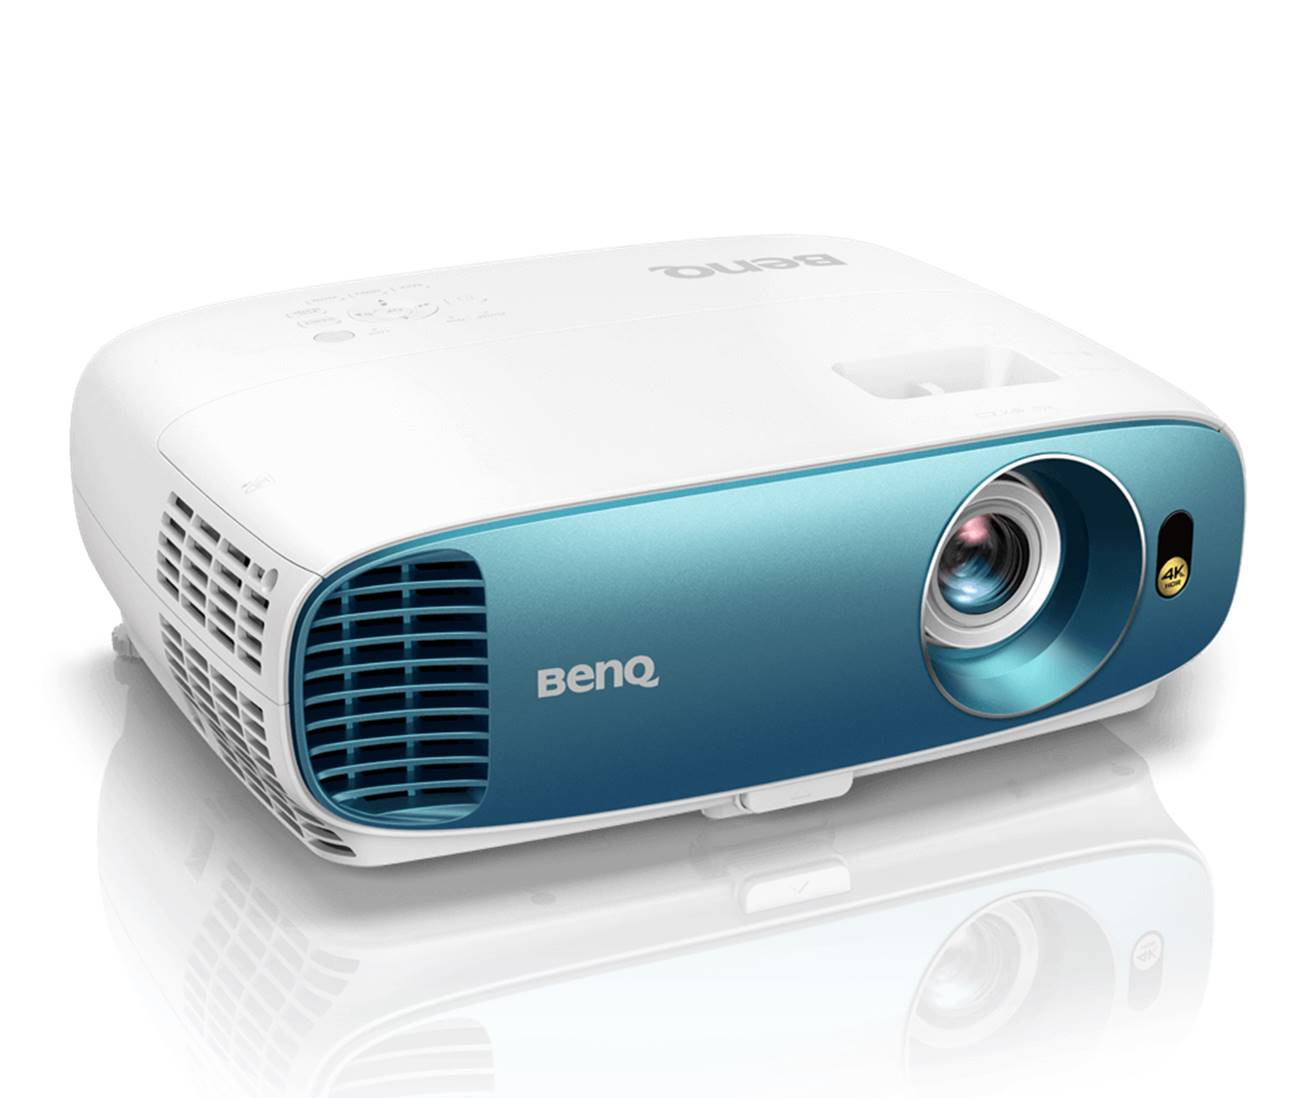 BenQ TK800 4K Projector for Home Theater